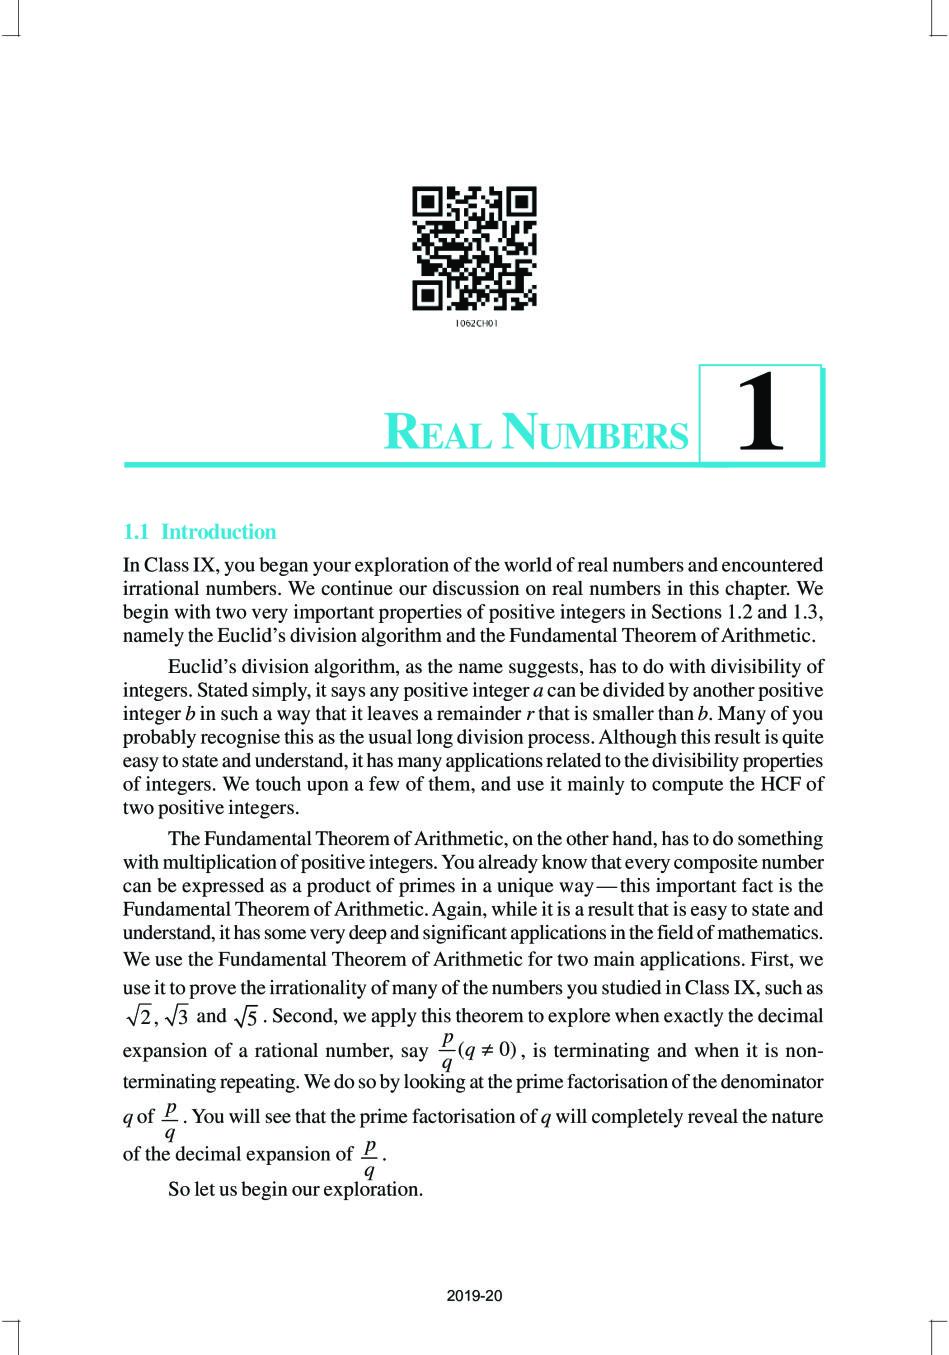 NCERT Book Class 10 Maths Chapter 1 Real Numbers - Page 1